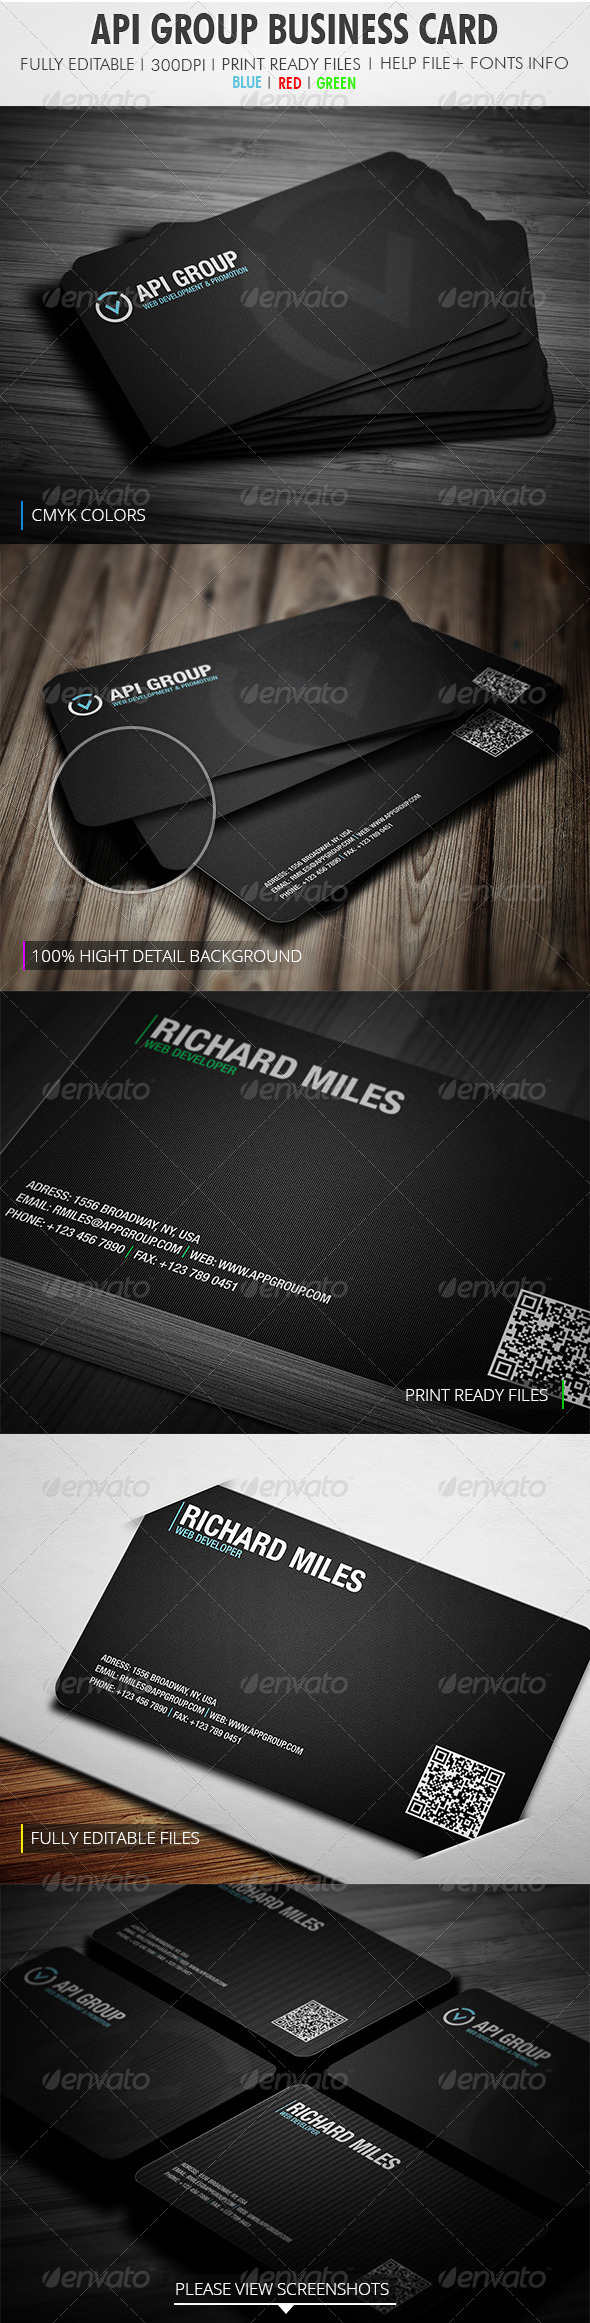 Api Group Business Card - Corporate Business Cards